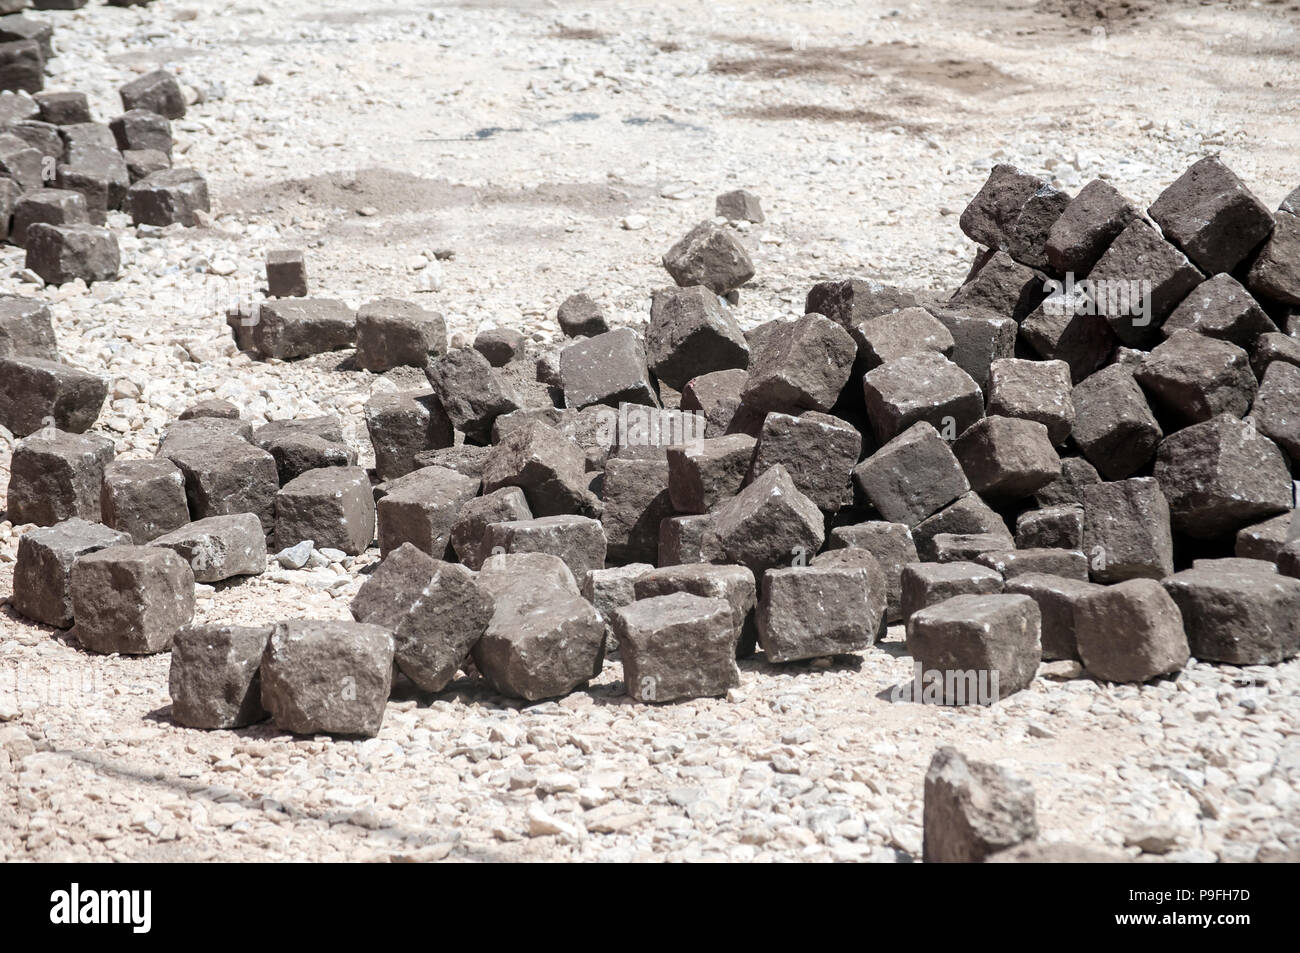 Construction work on paving of old city street closeup - Stock Image